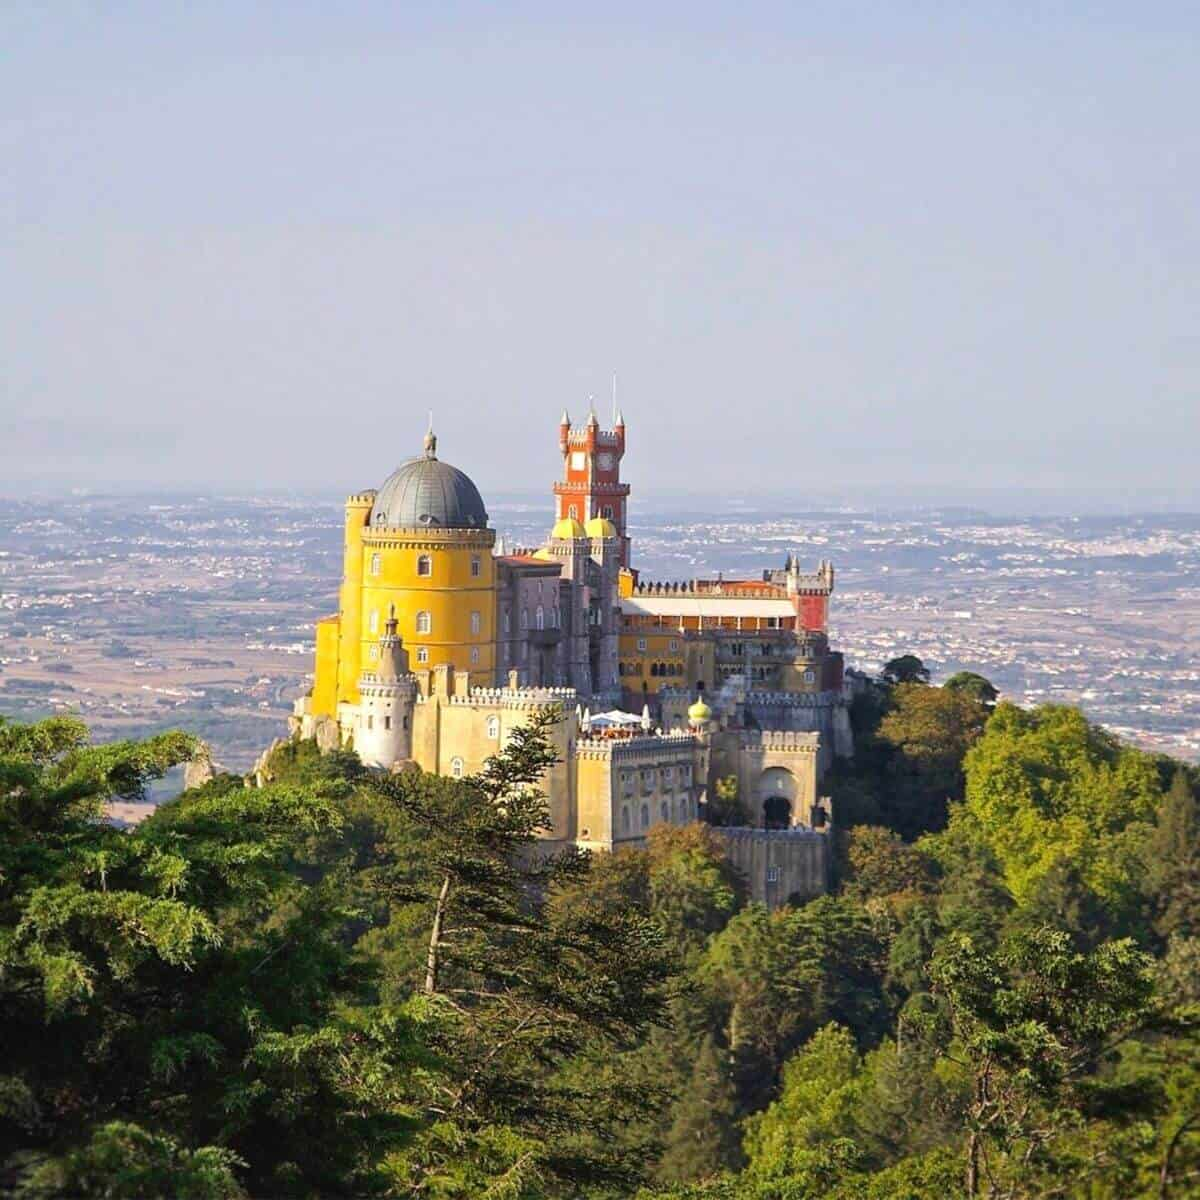 Pena Palace surrounded be trees.